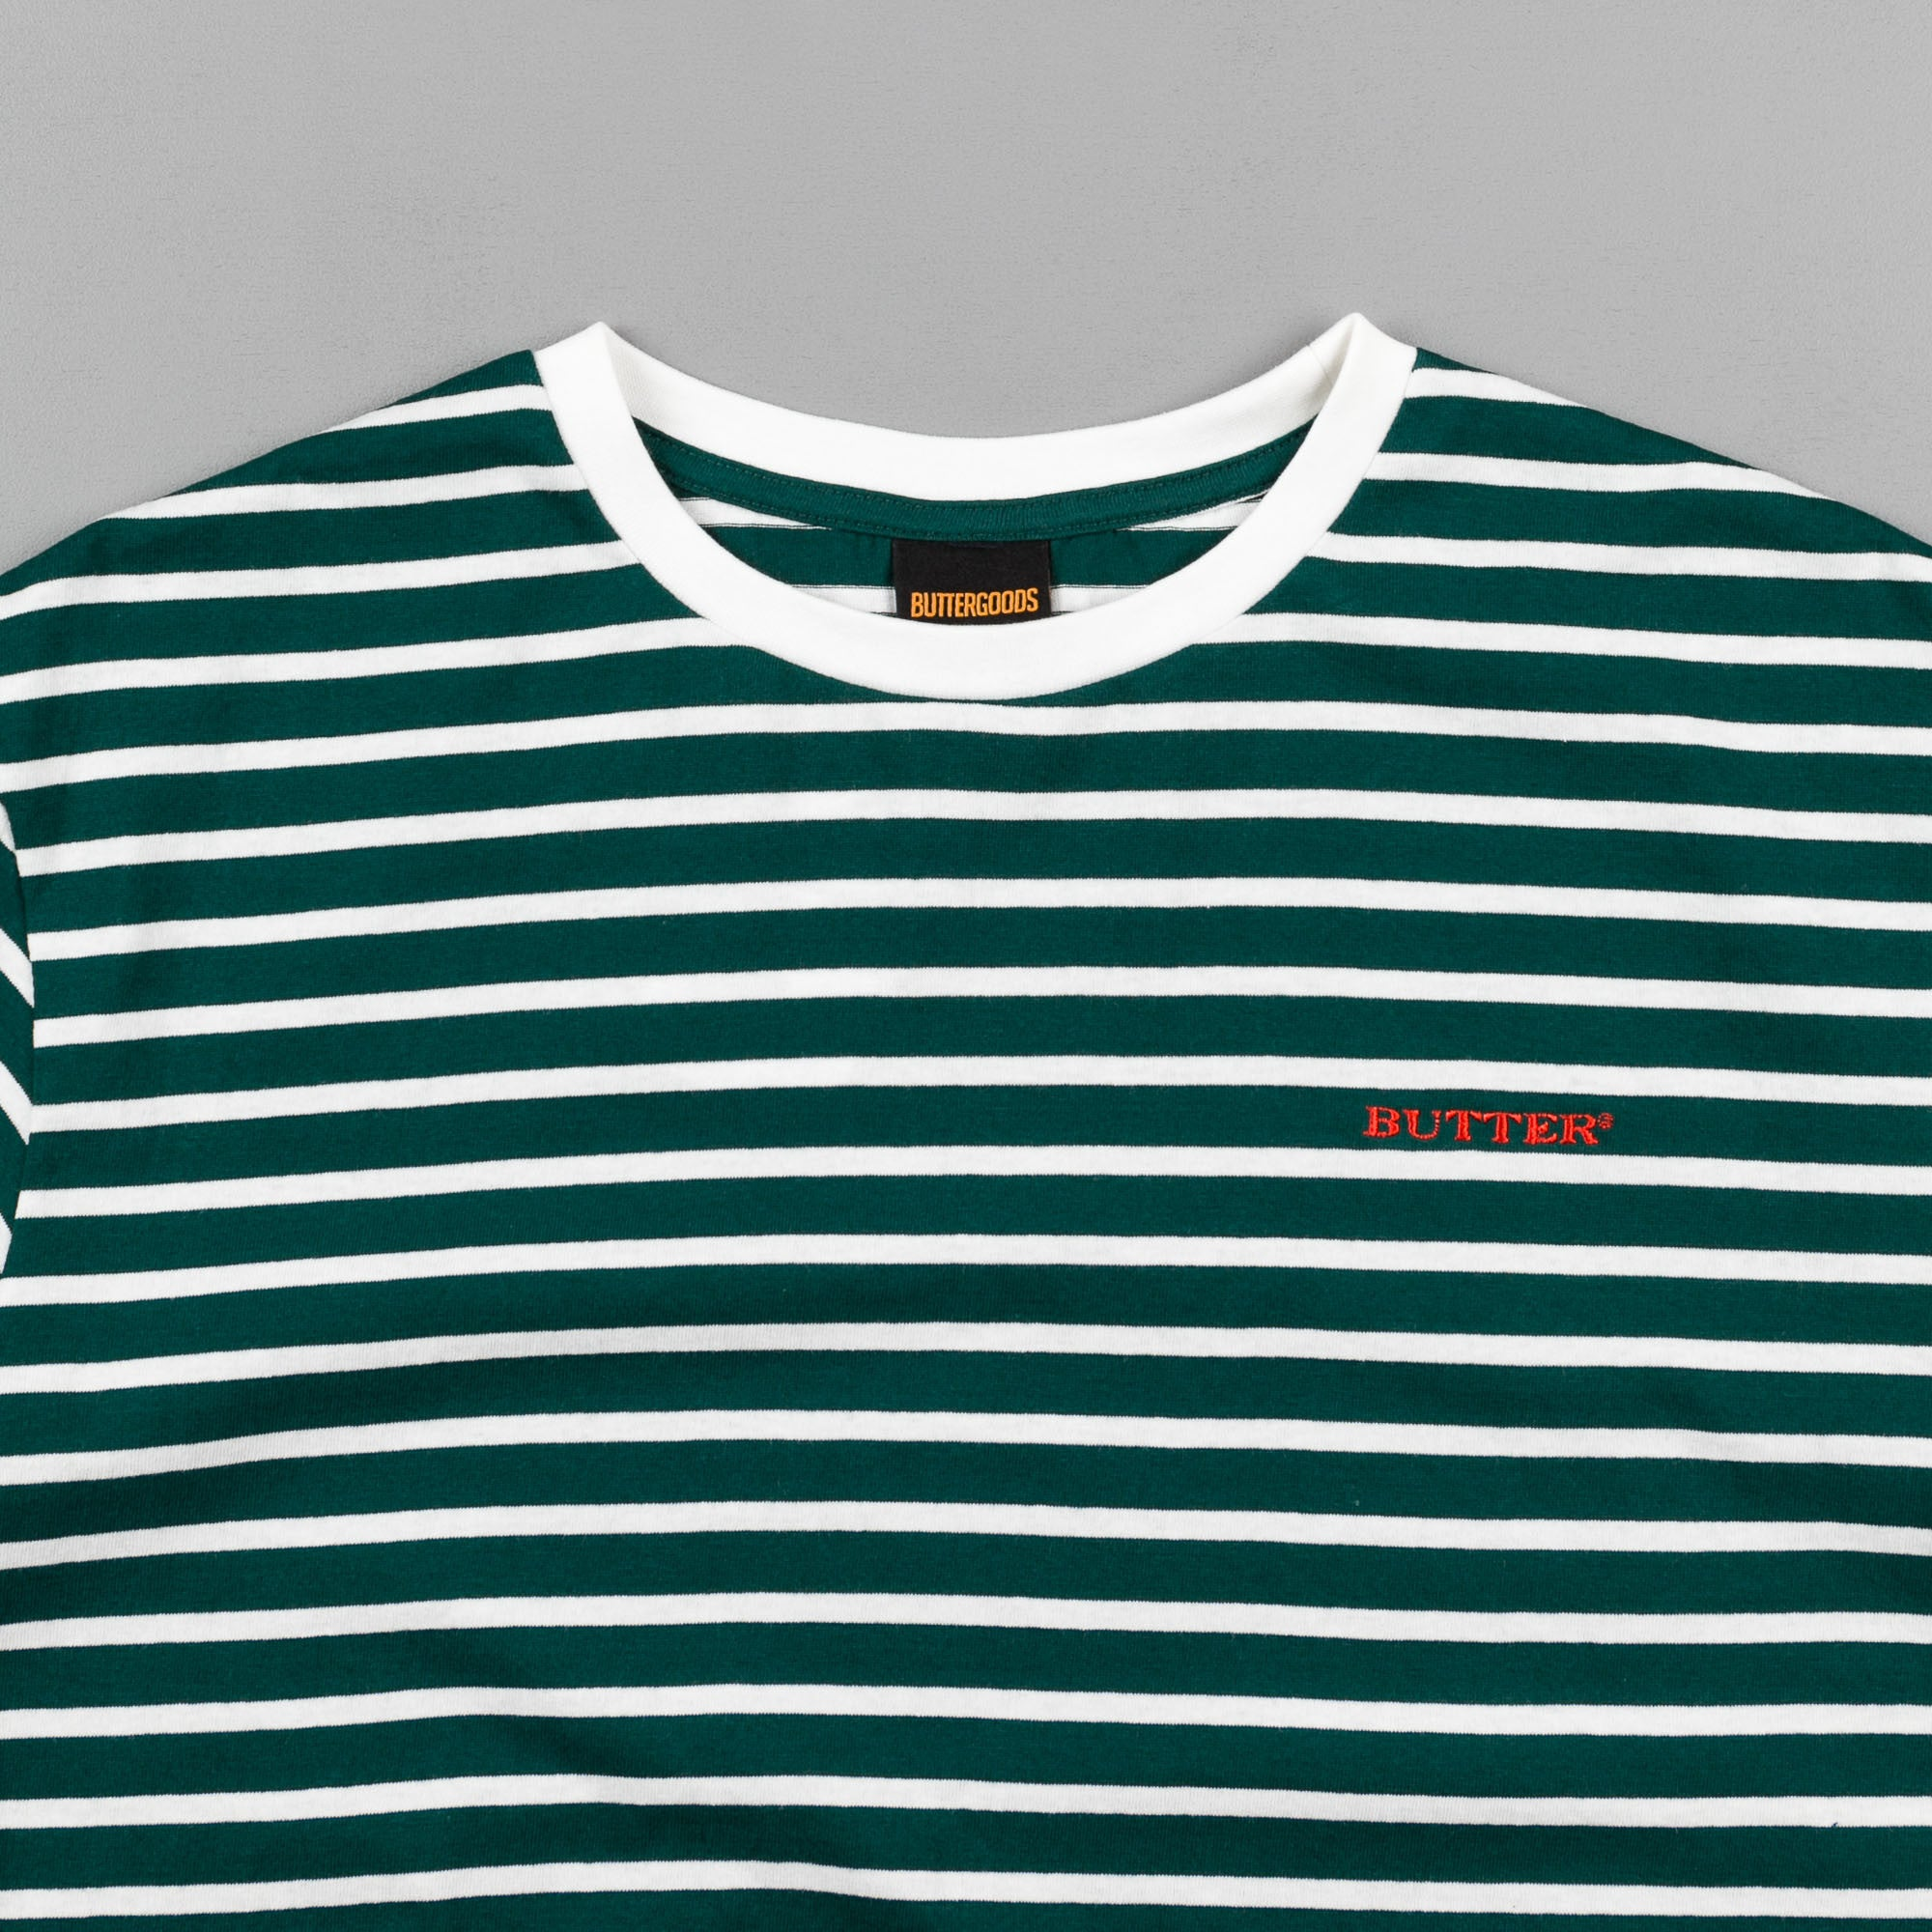 Butter Goods Milan Striped T-Shirt - Forest / Natural